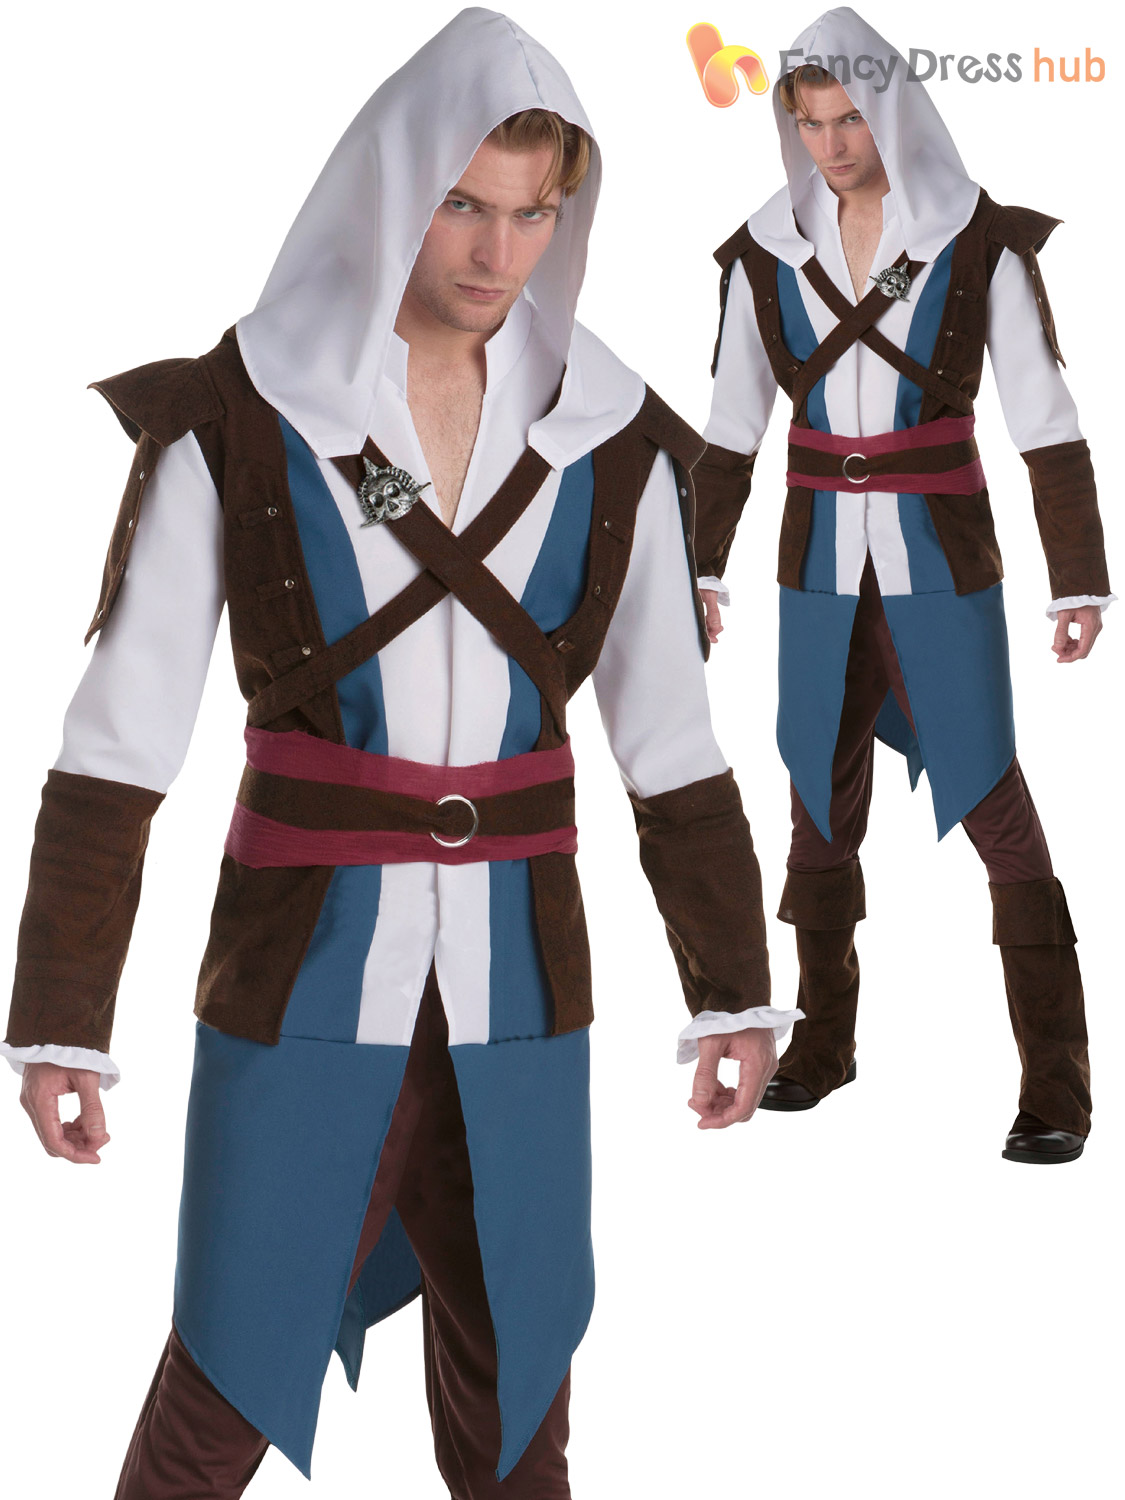 Adult video costumes